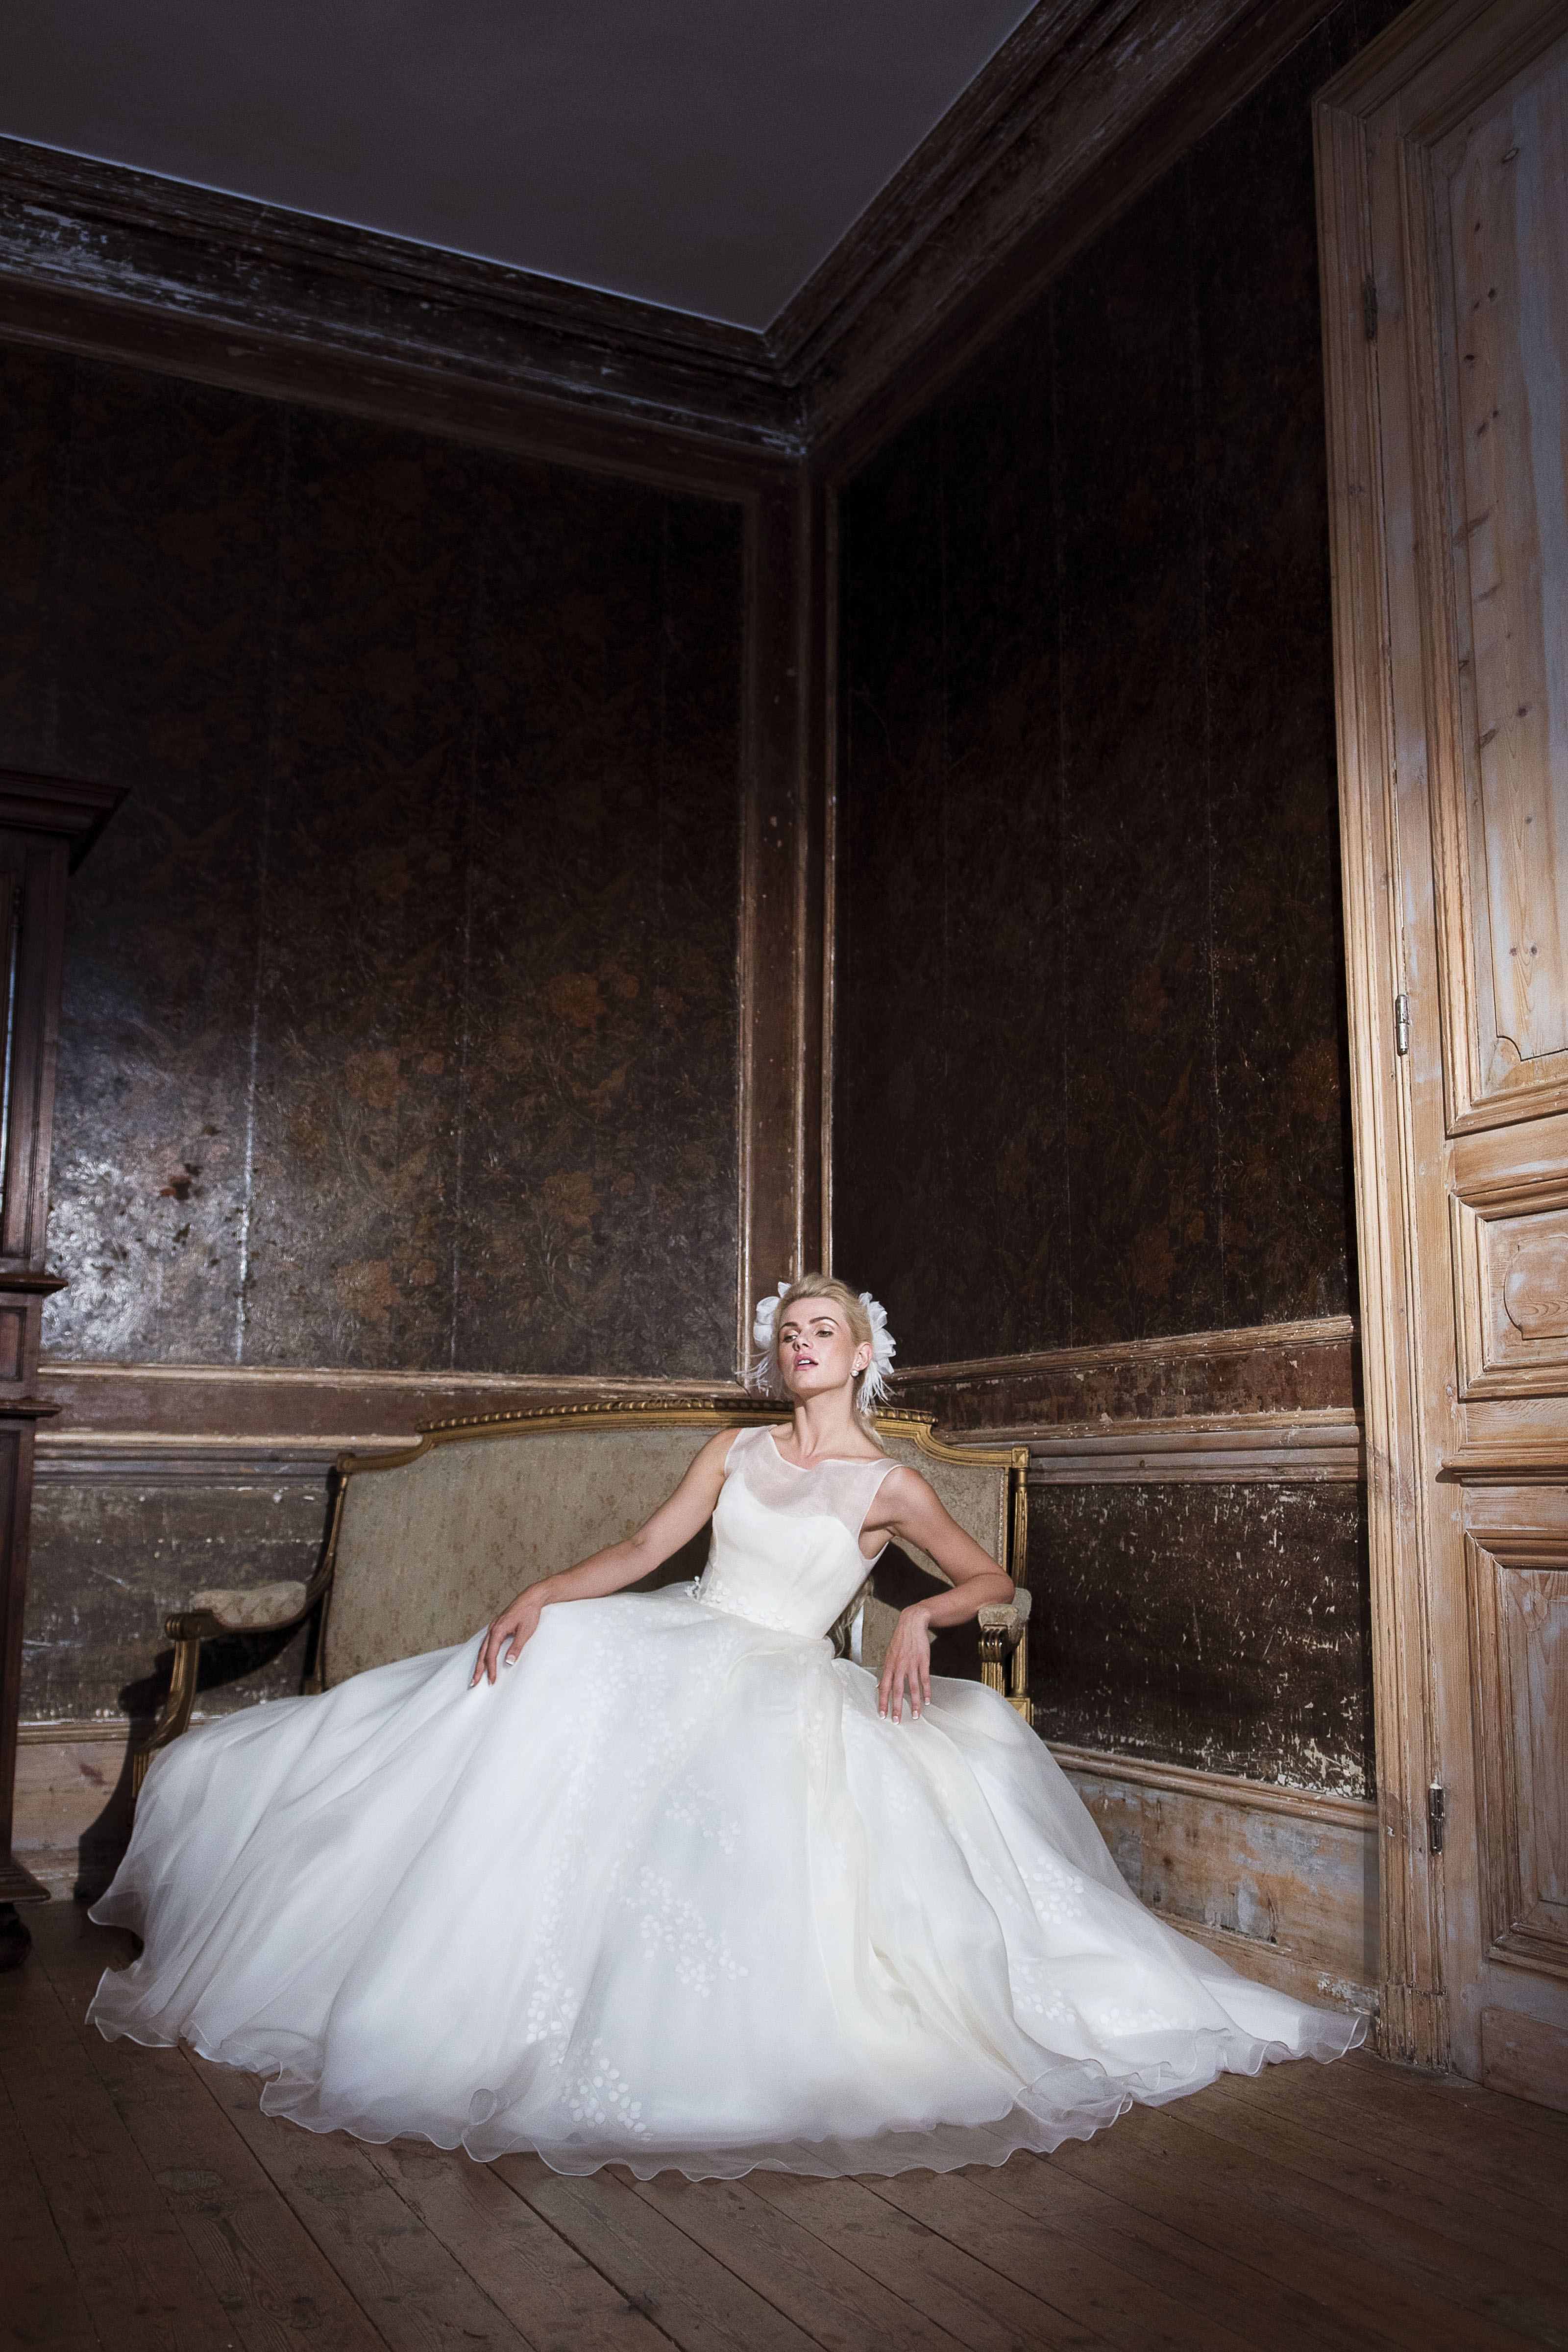 Bridal Shop London View The First Images Of The Lyn Ashworth By